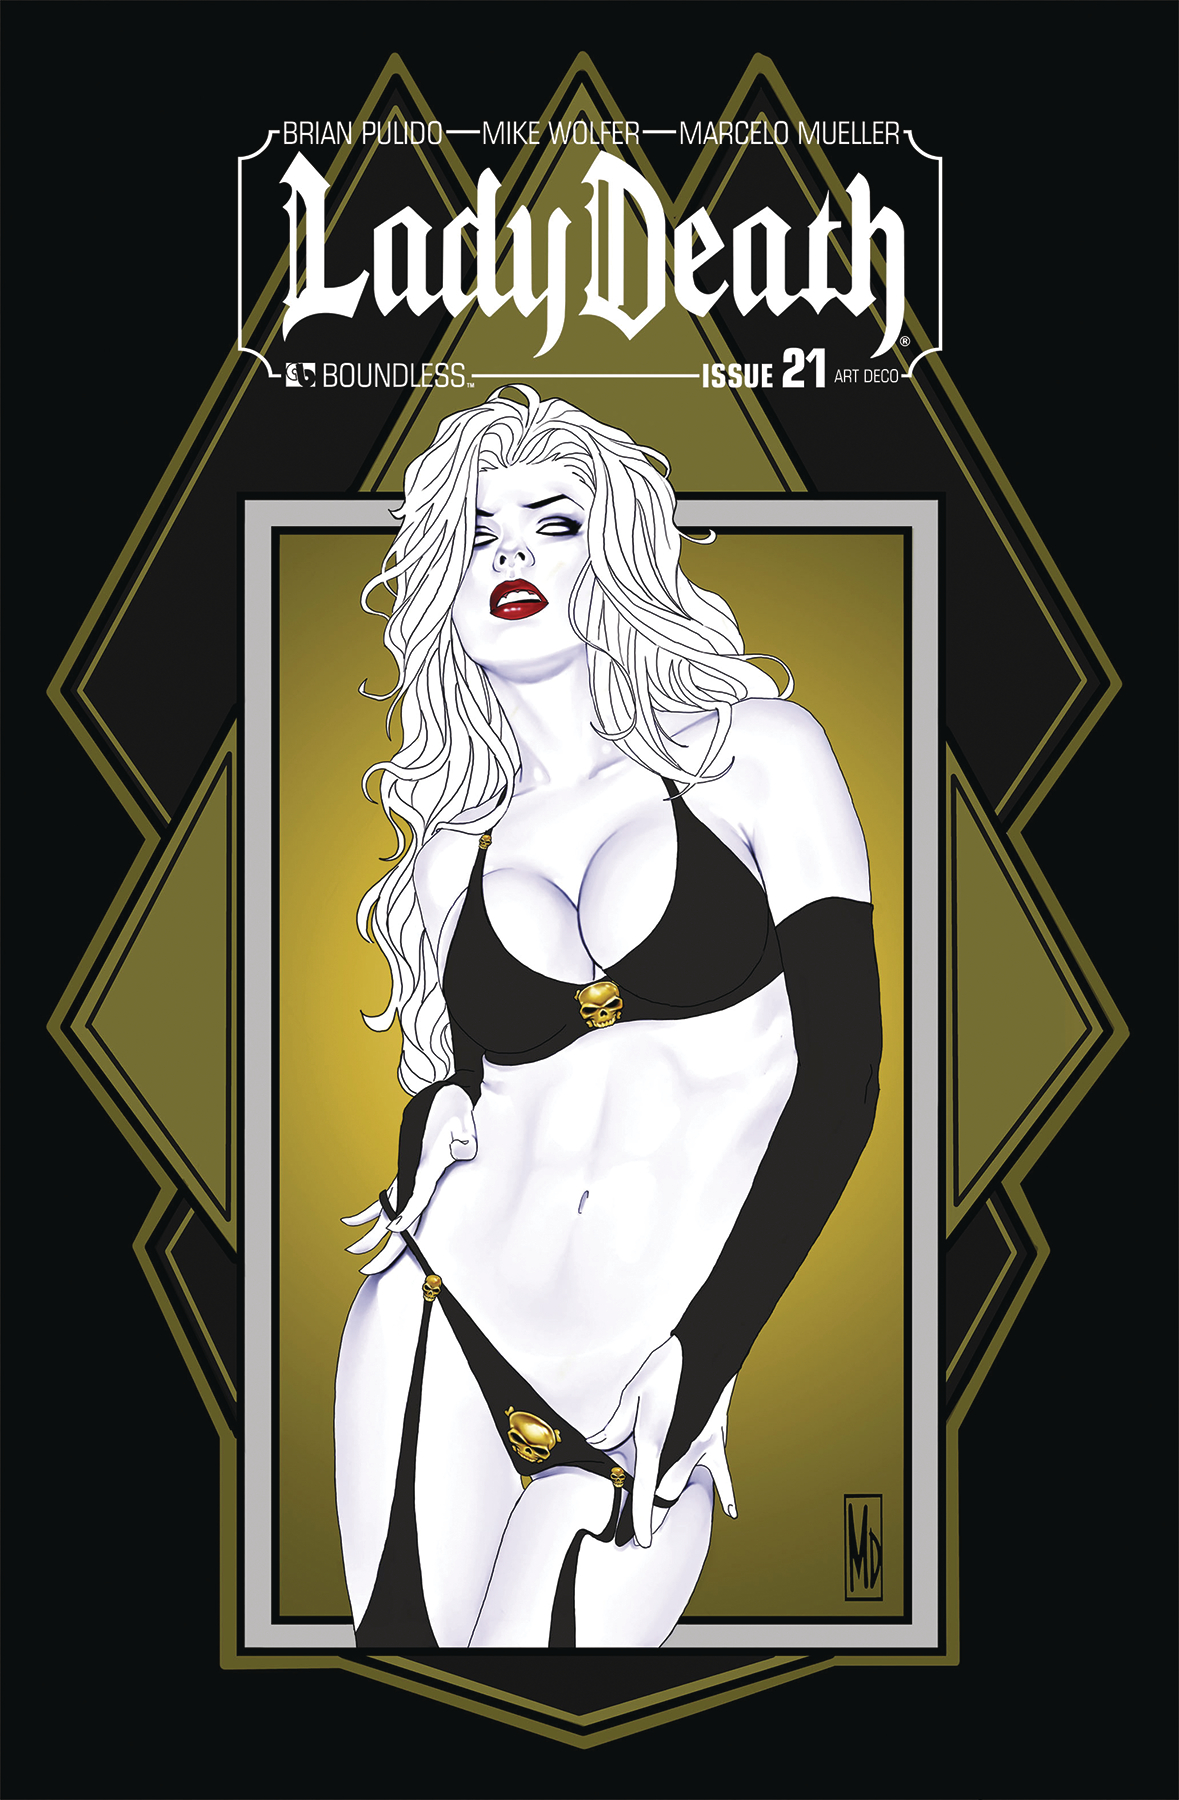 LADY DEATH #21 ART DECO VARIANT